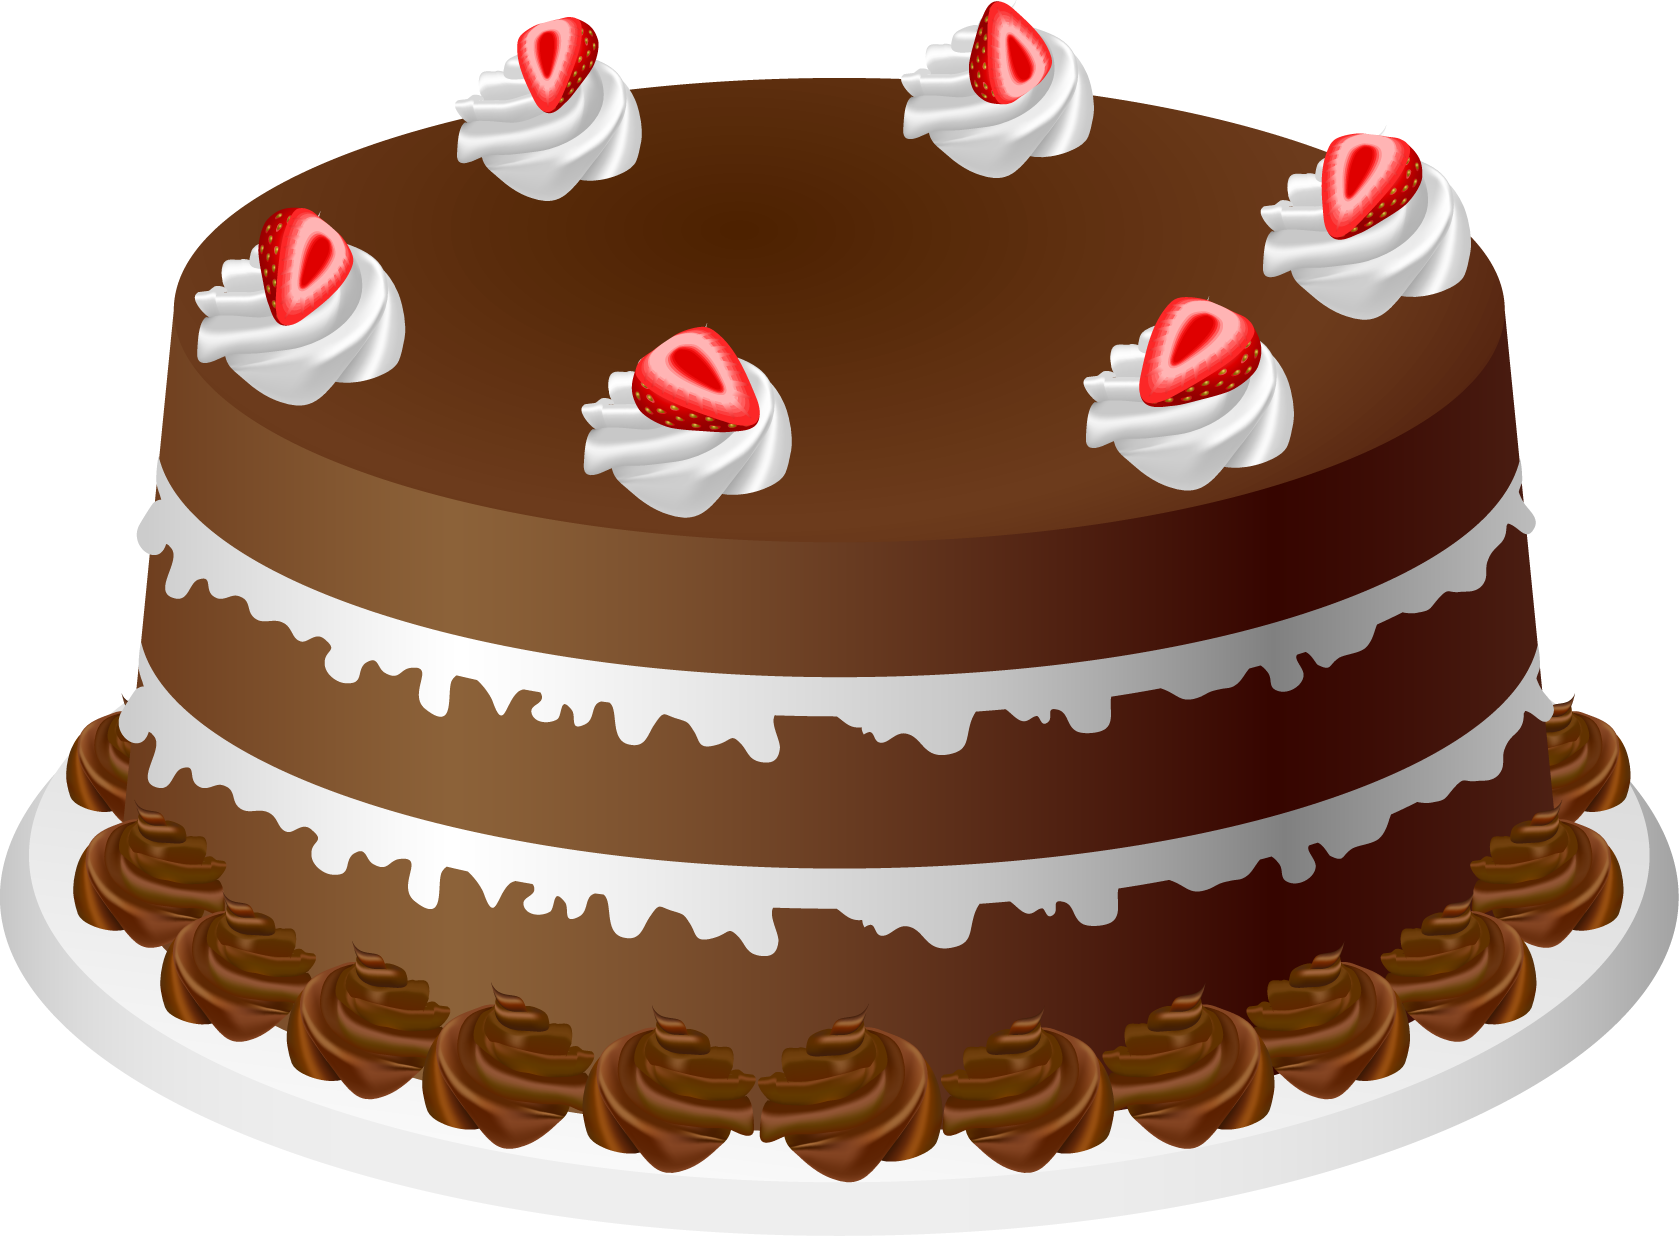 Chocolate Cake Clipart